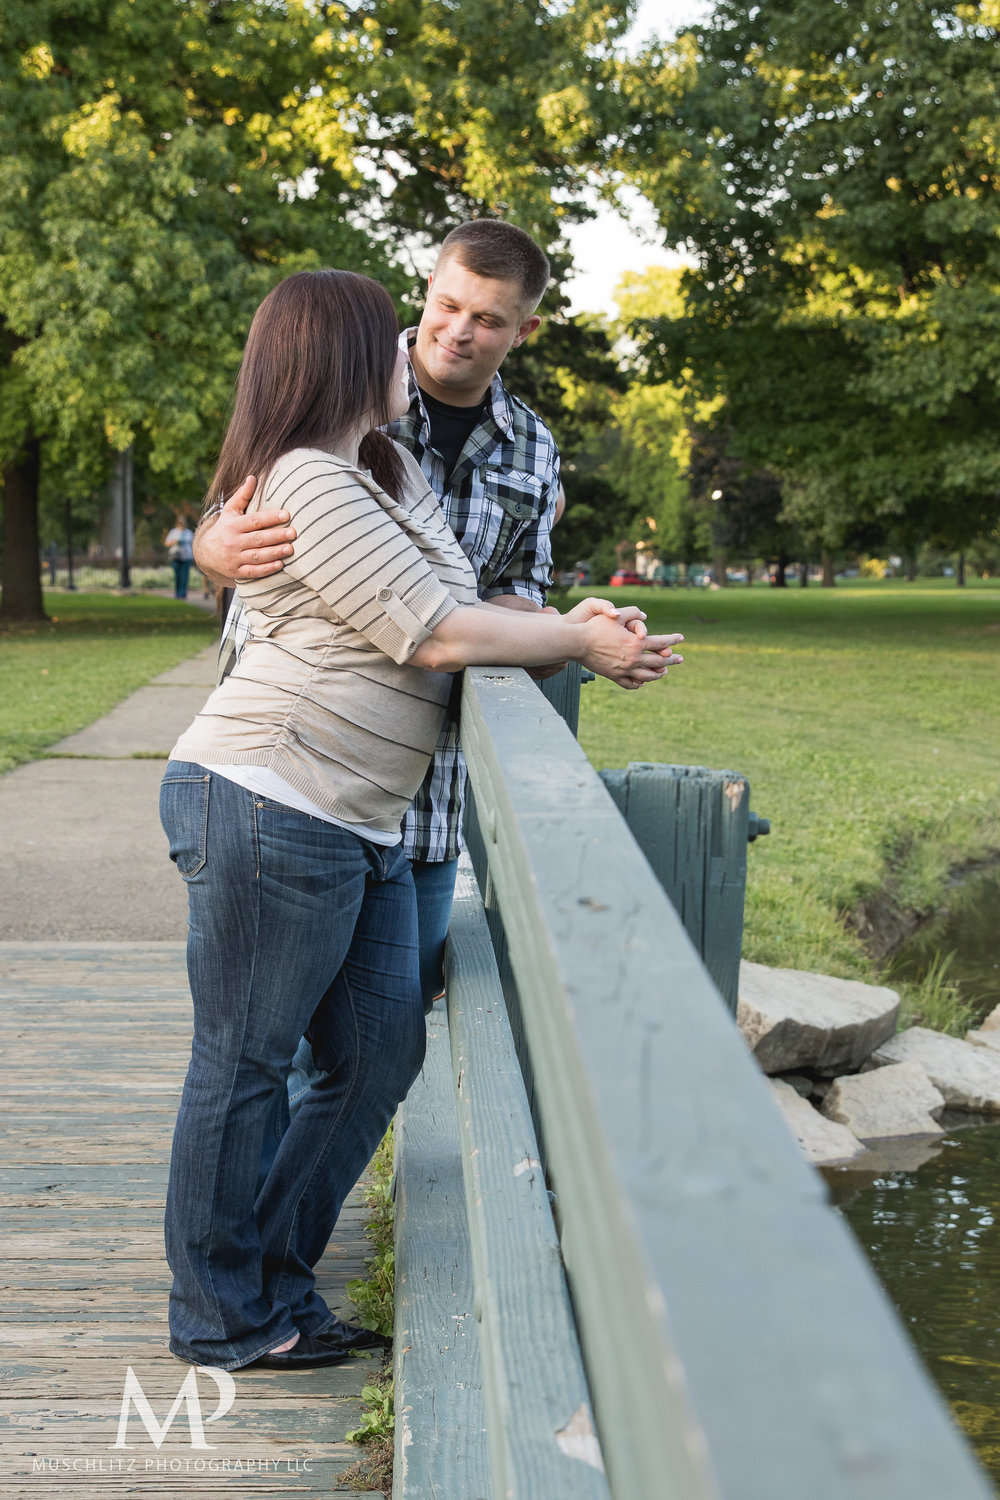 schiller-park-german-village-columbus-ohio-engagement-portrait-session-muschlitz-photography-009.JPG